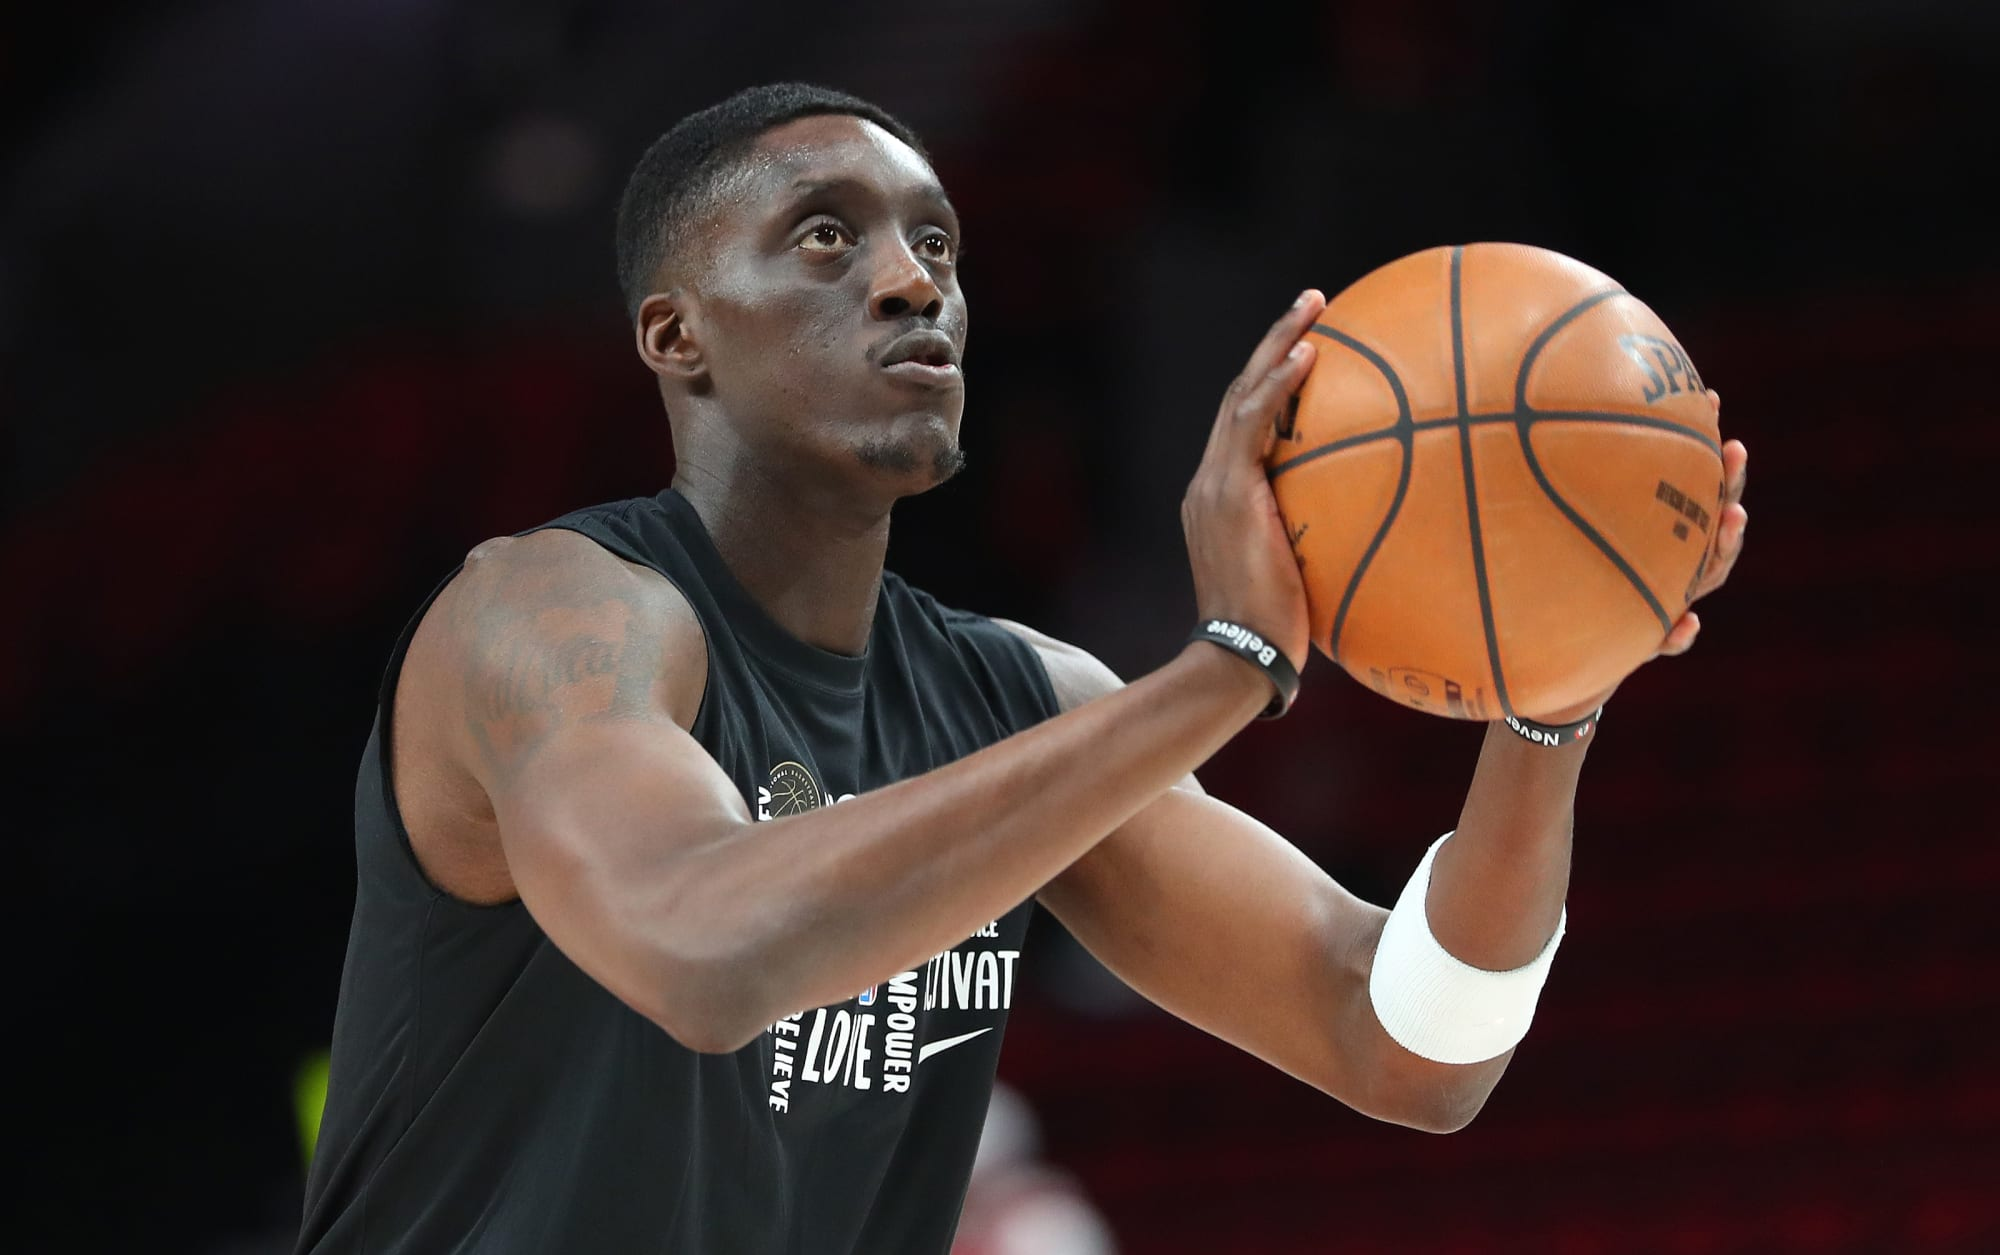 Tony Snell beats Raptors at the buzzer in heartbreaking loss for Toronto